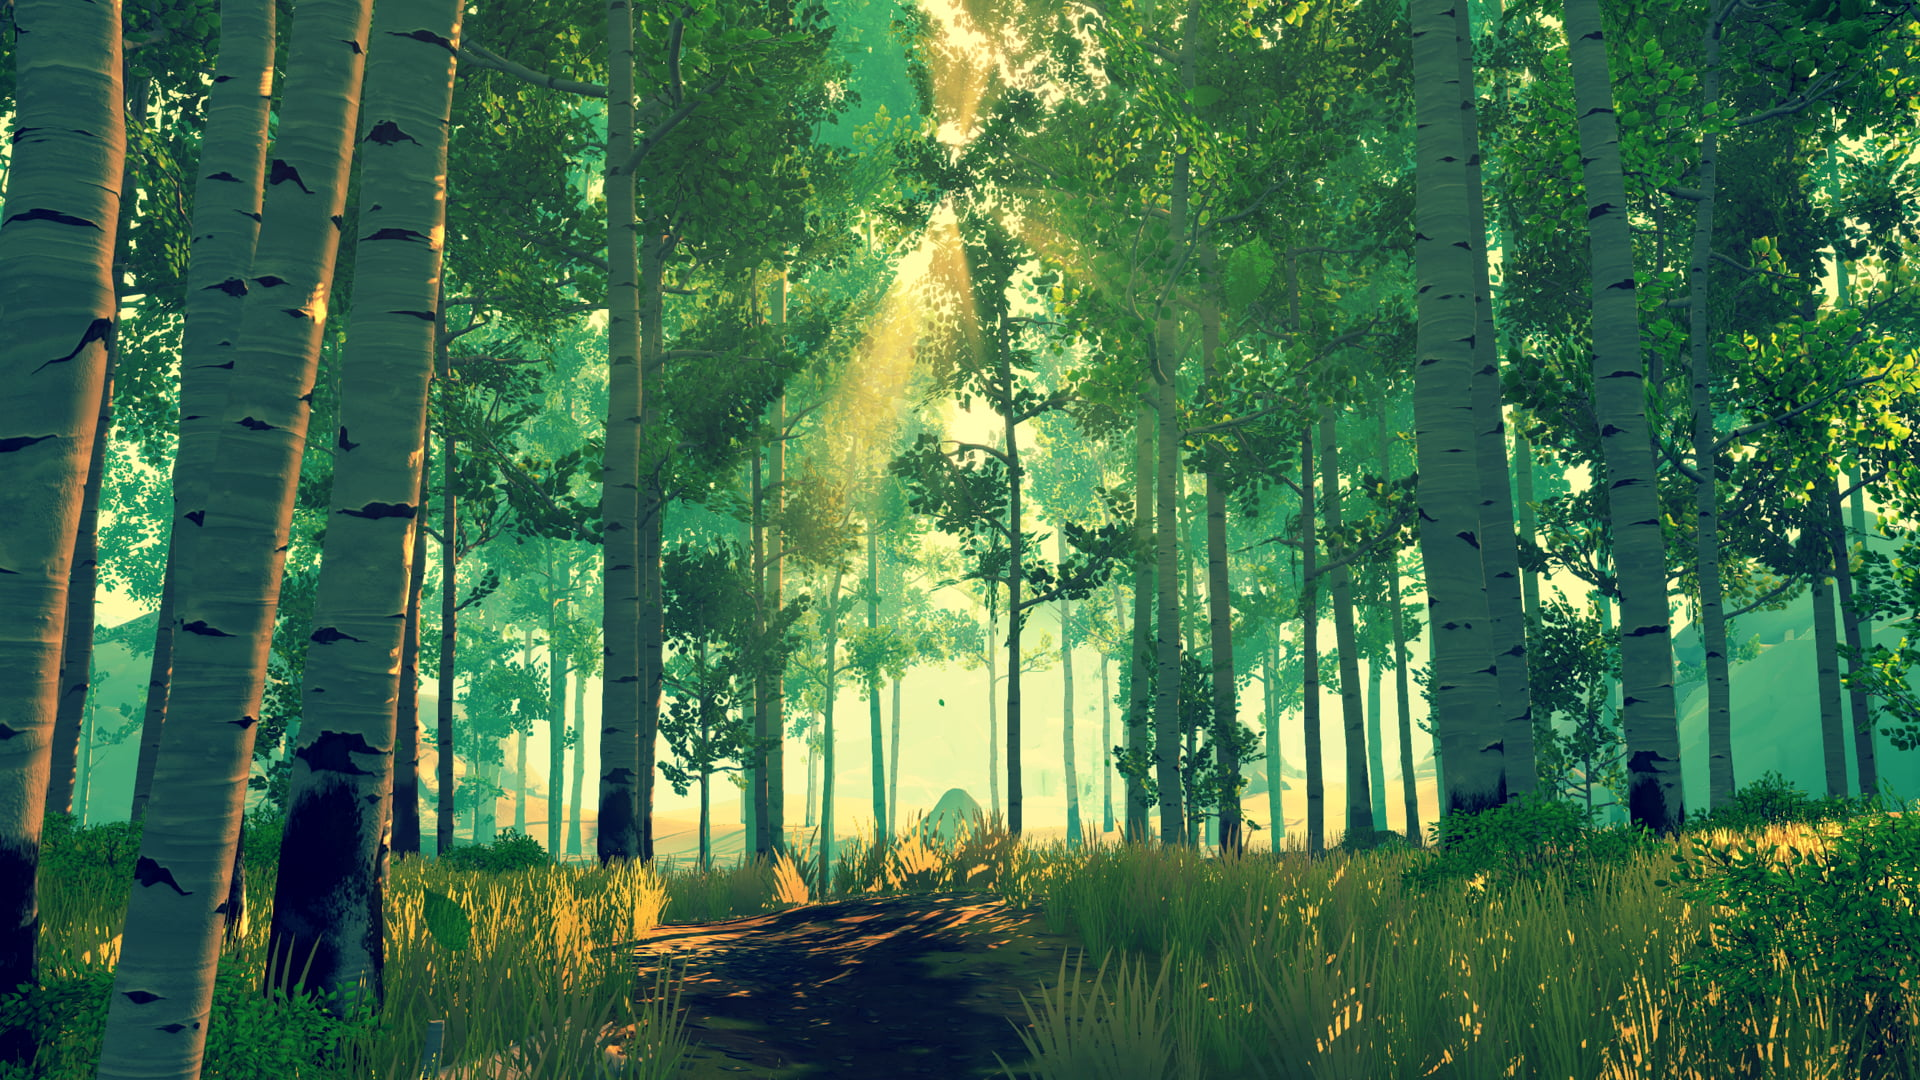 firewatch wallpaper,people in nature,tree,nature,green,forest